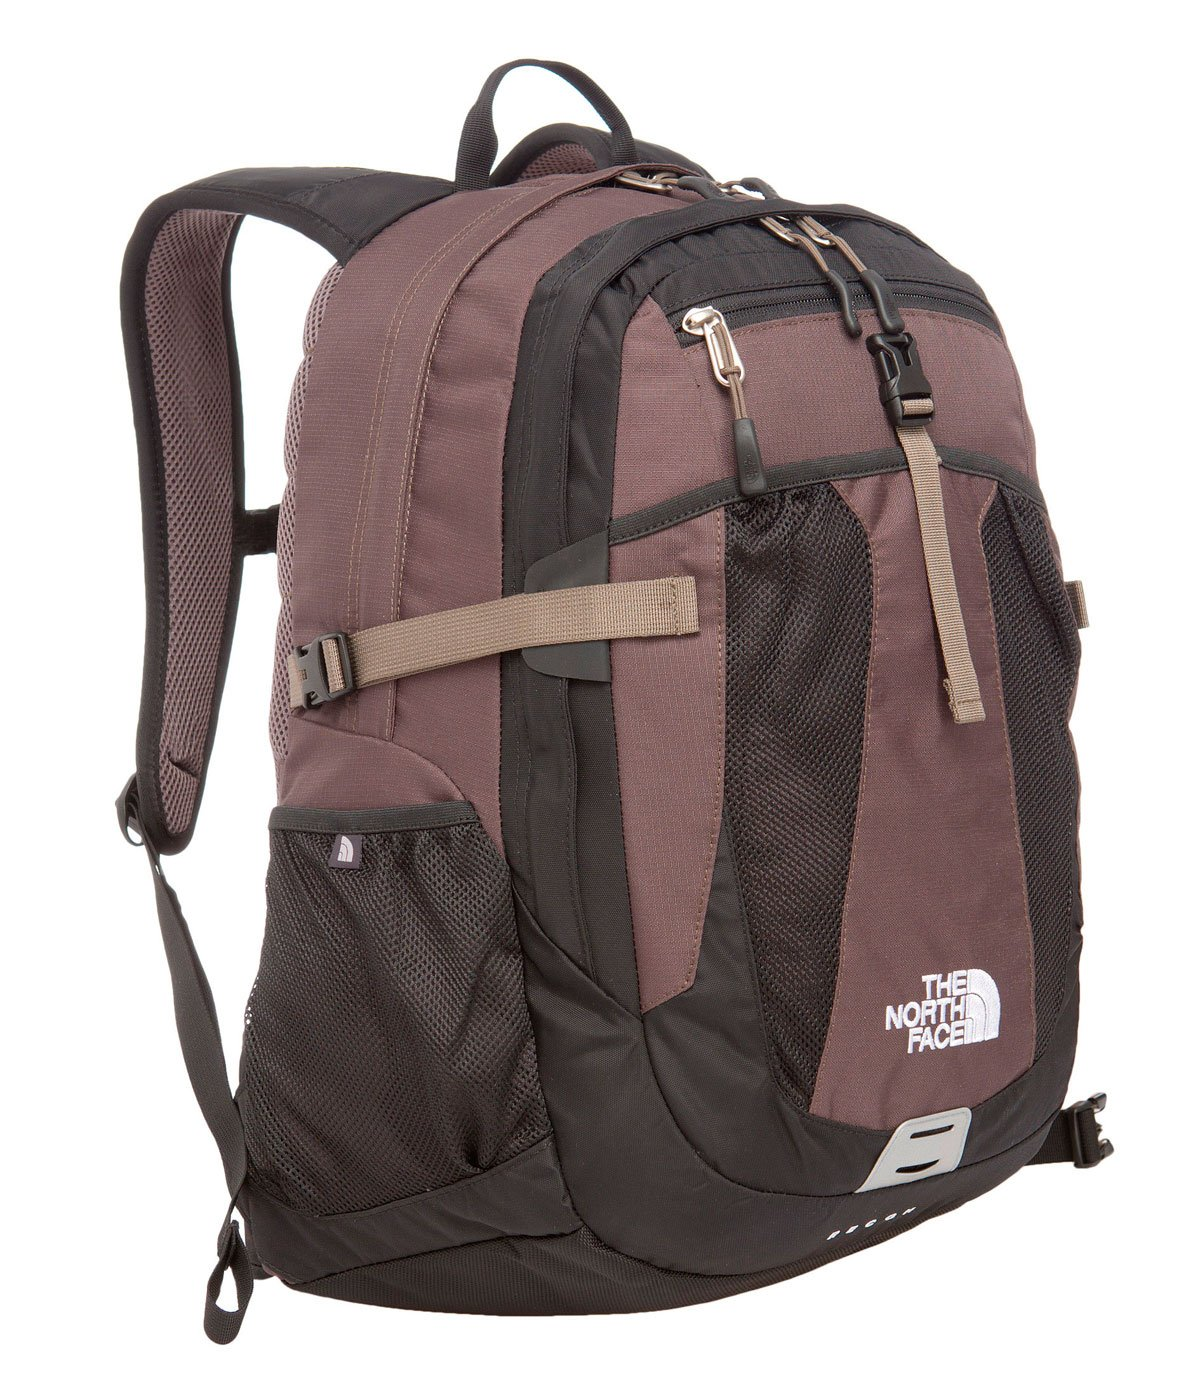 The north face North face recon rygsæk coffee fra billigsport24